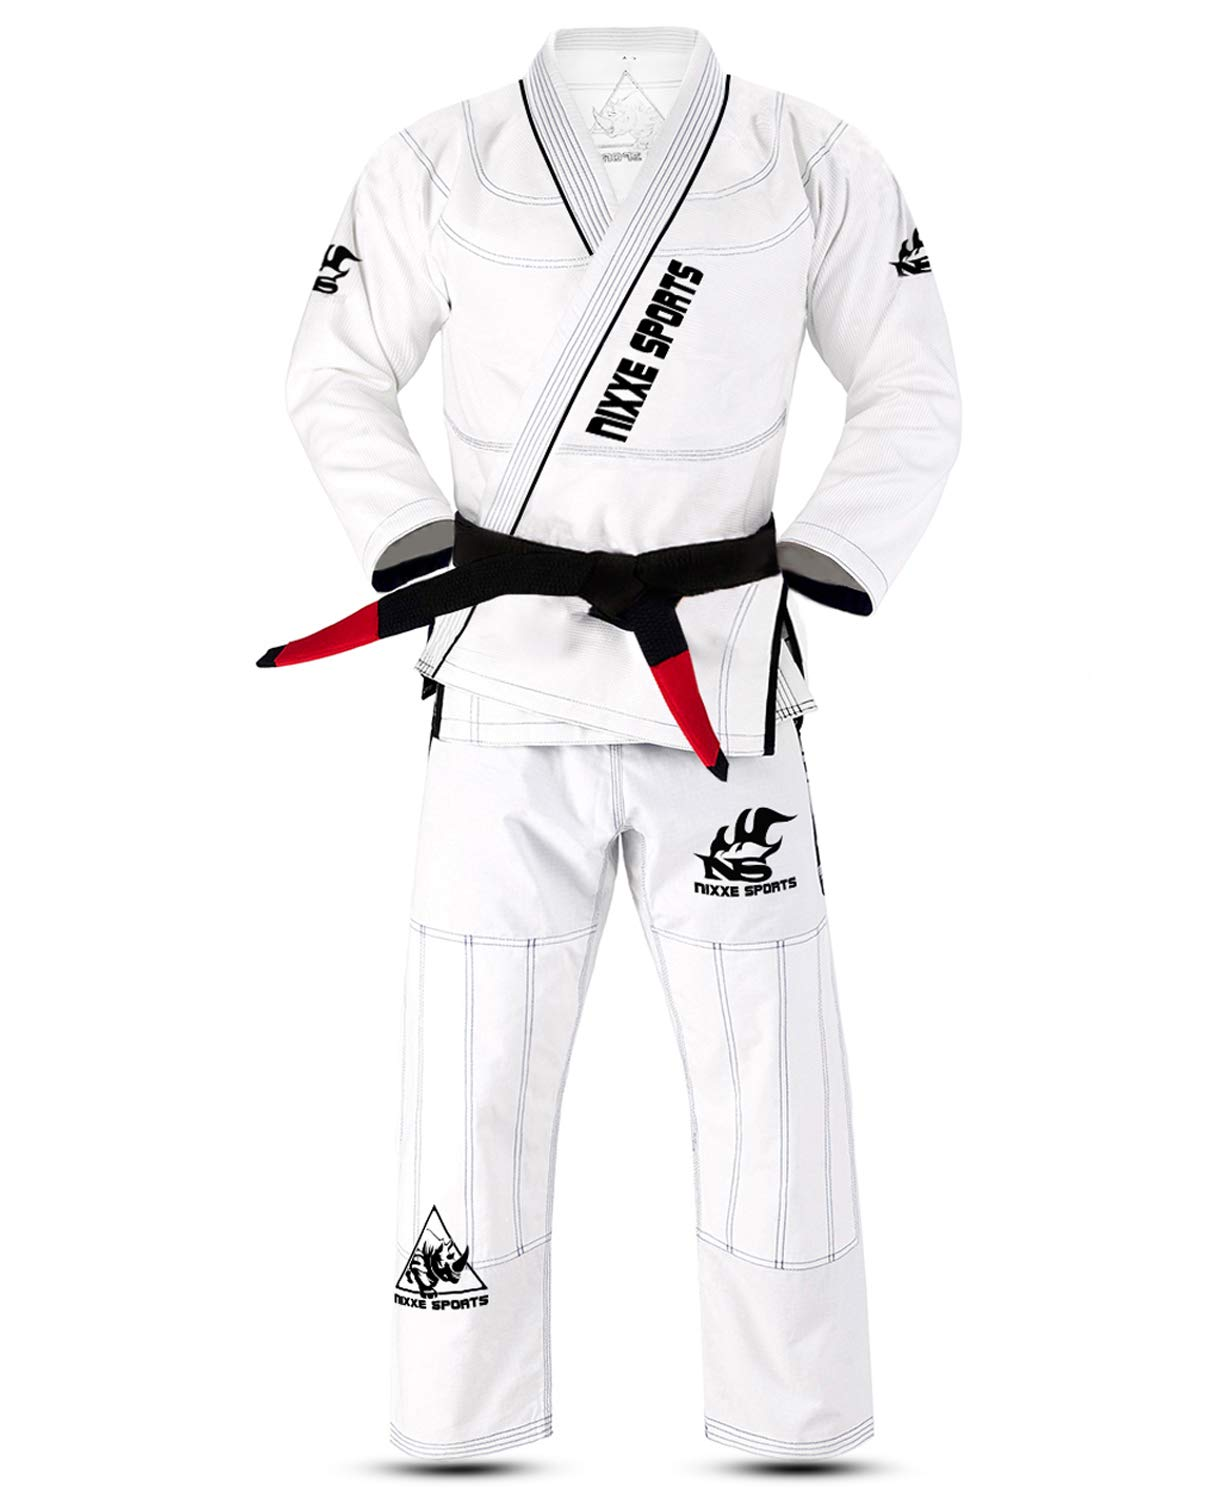 Nixxe Sports BJJ BJJ Brazilian Sports Jiu Jitsu WHITE Adult GI - White A1 WHITE B07QK367WT, 住吉区:220f9d93 --- capela.dominiotemporario.com